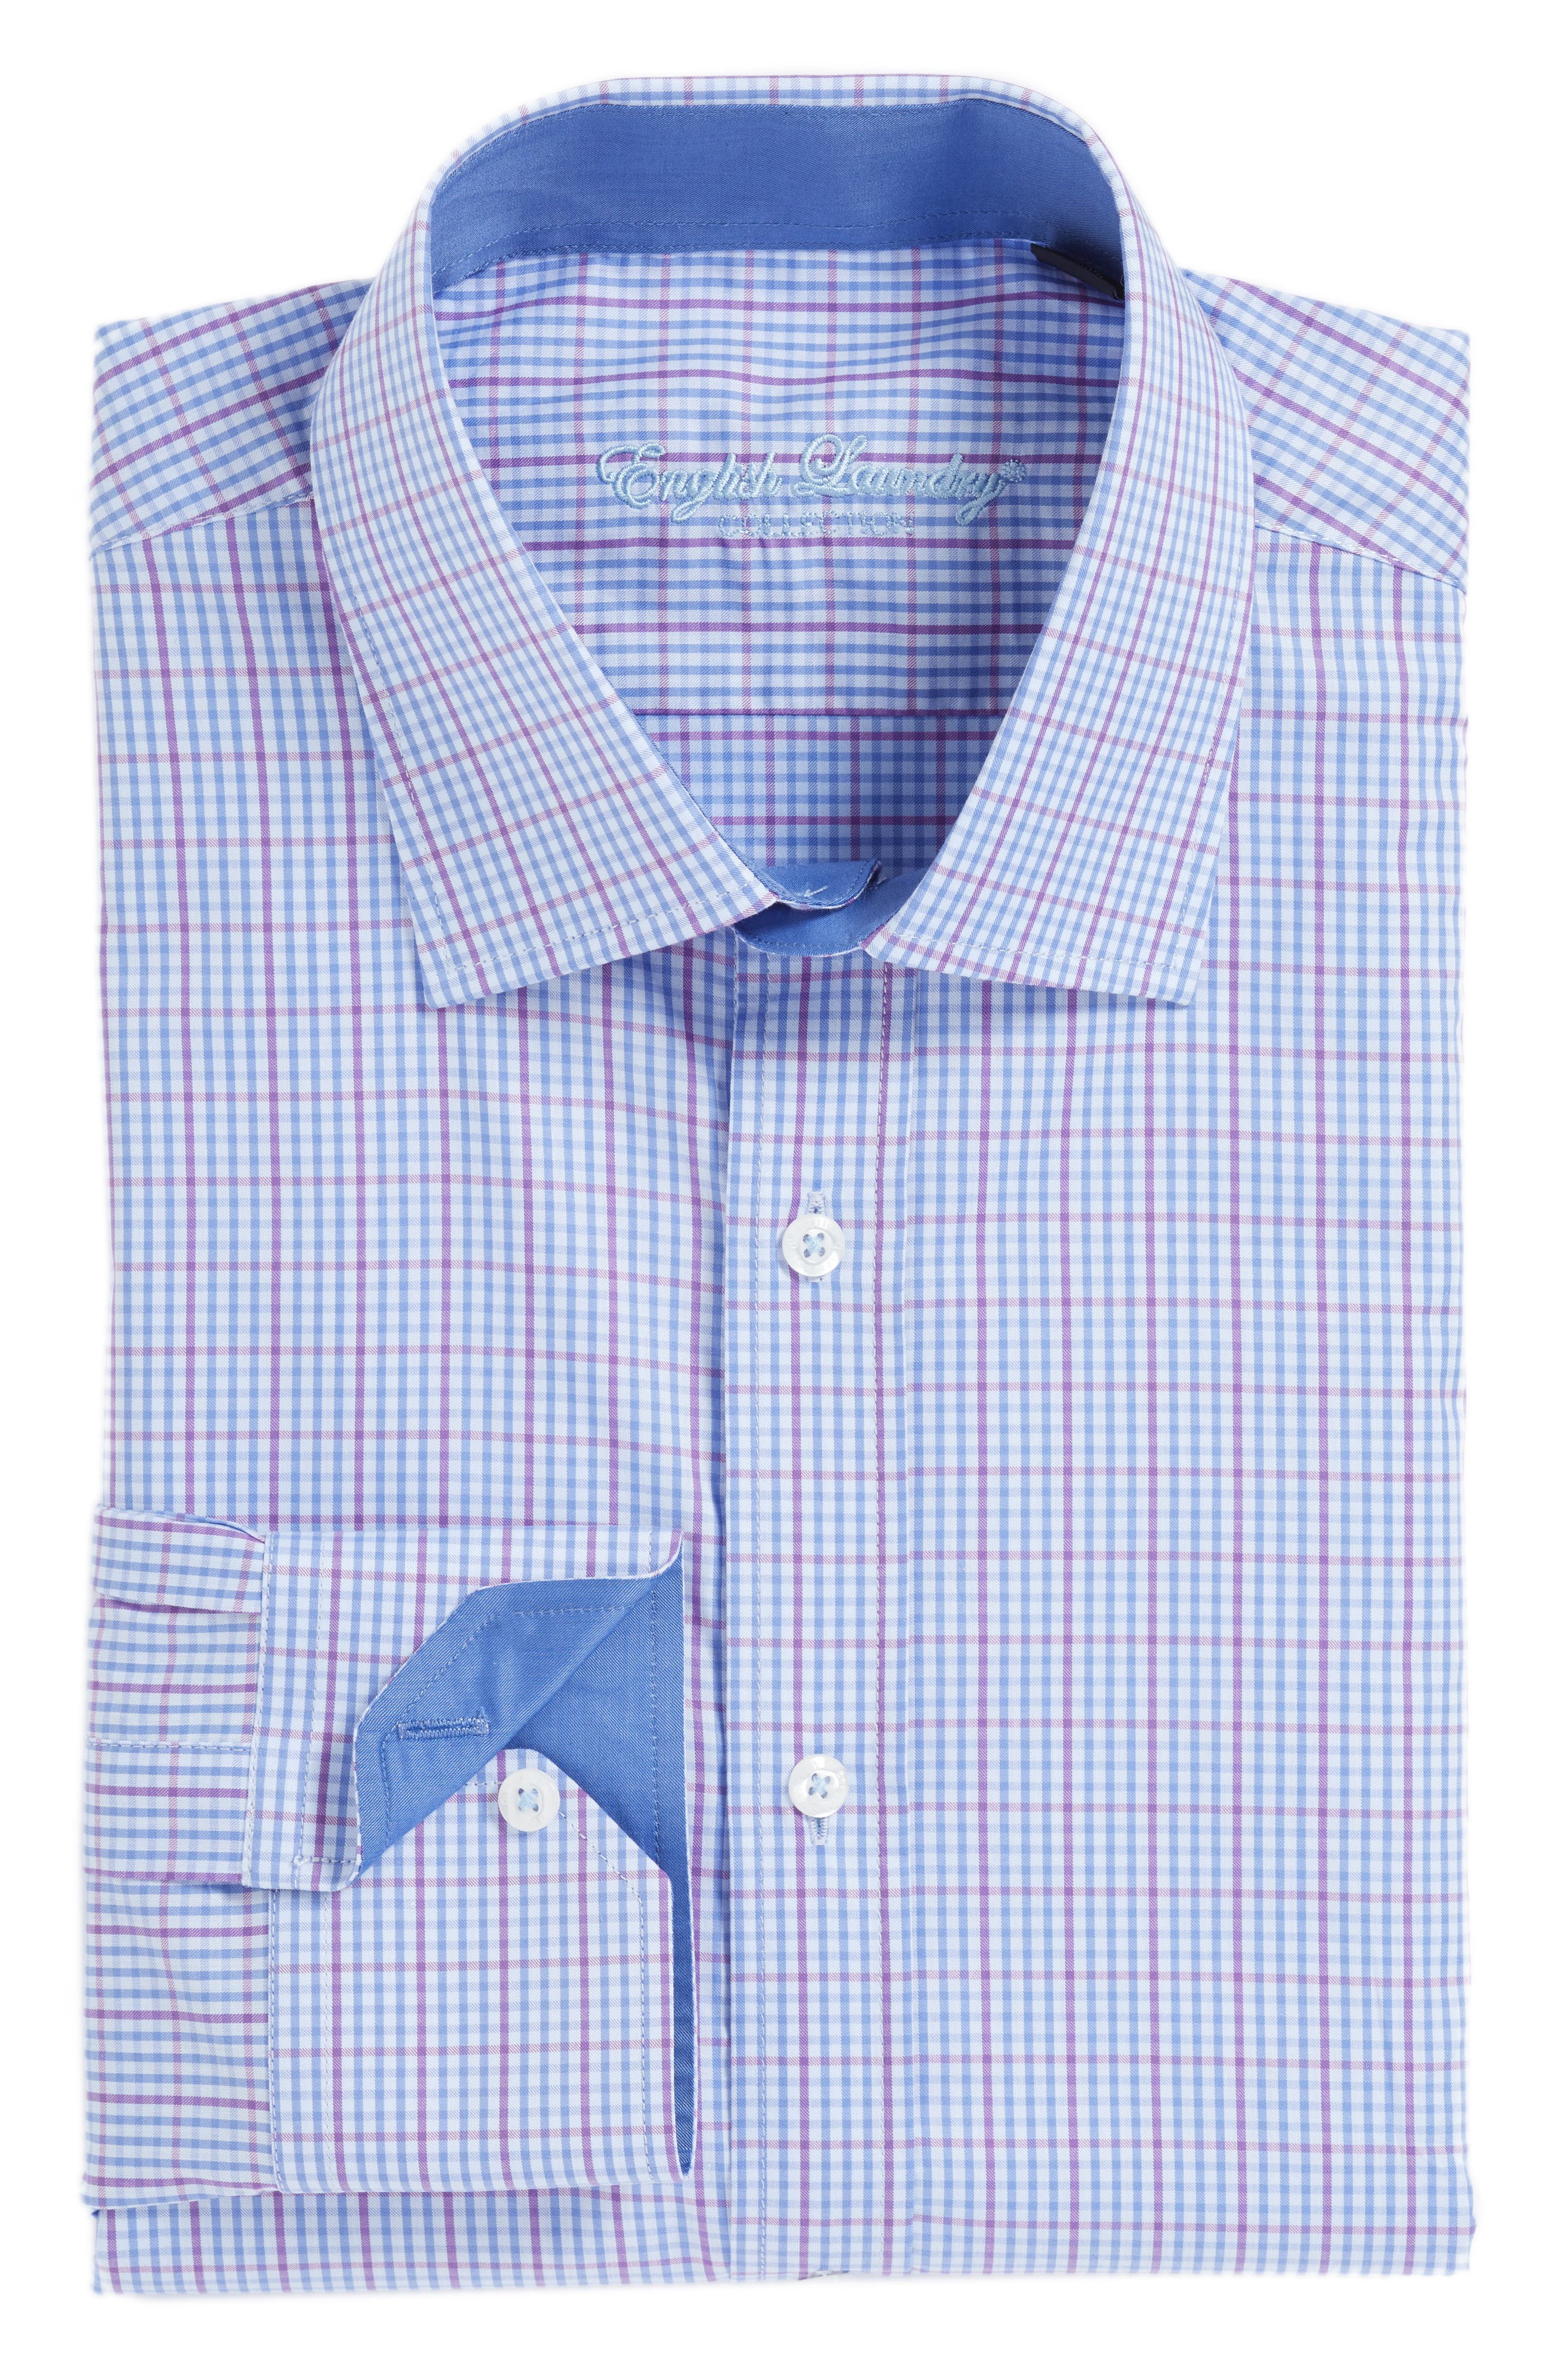 Trim Fit Check Dress Shirt,                         Main,                         color, Blue